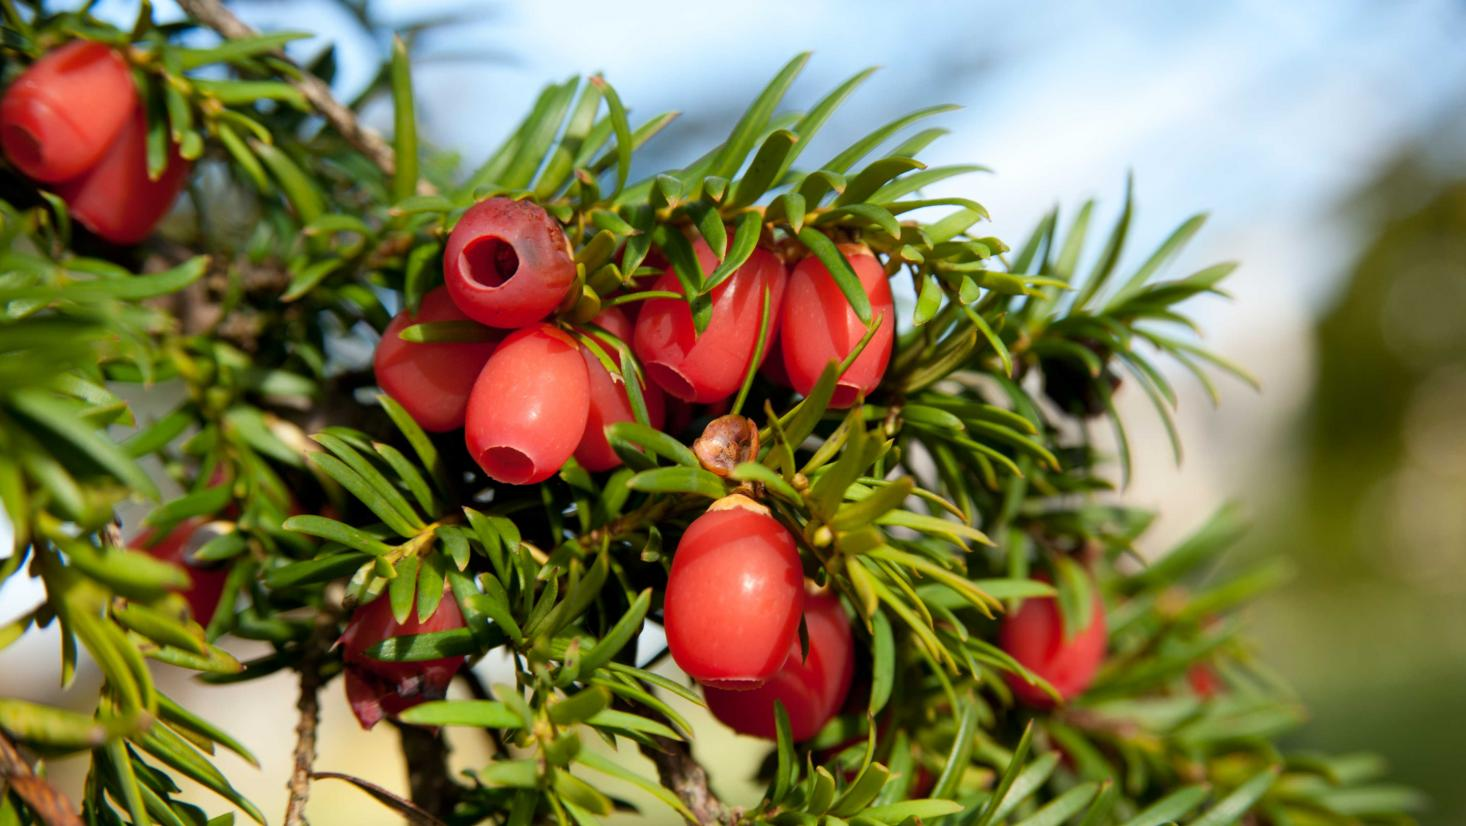 Red fruits on a tree